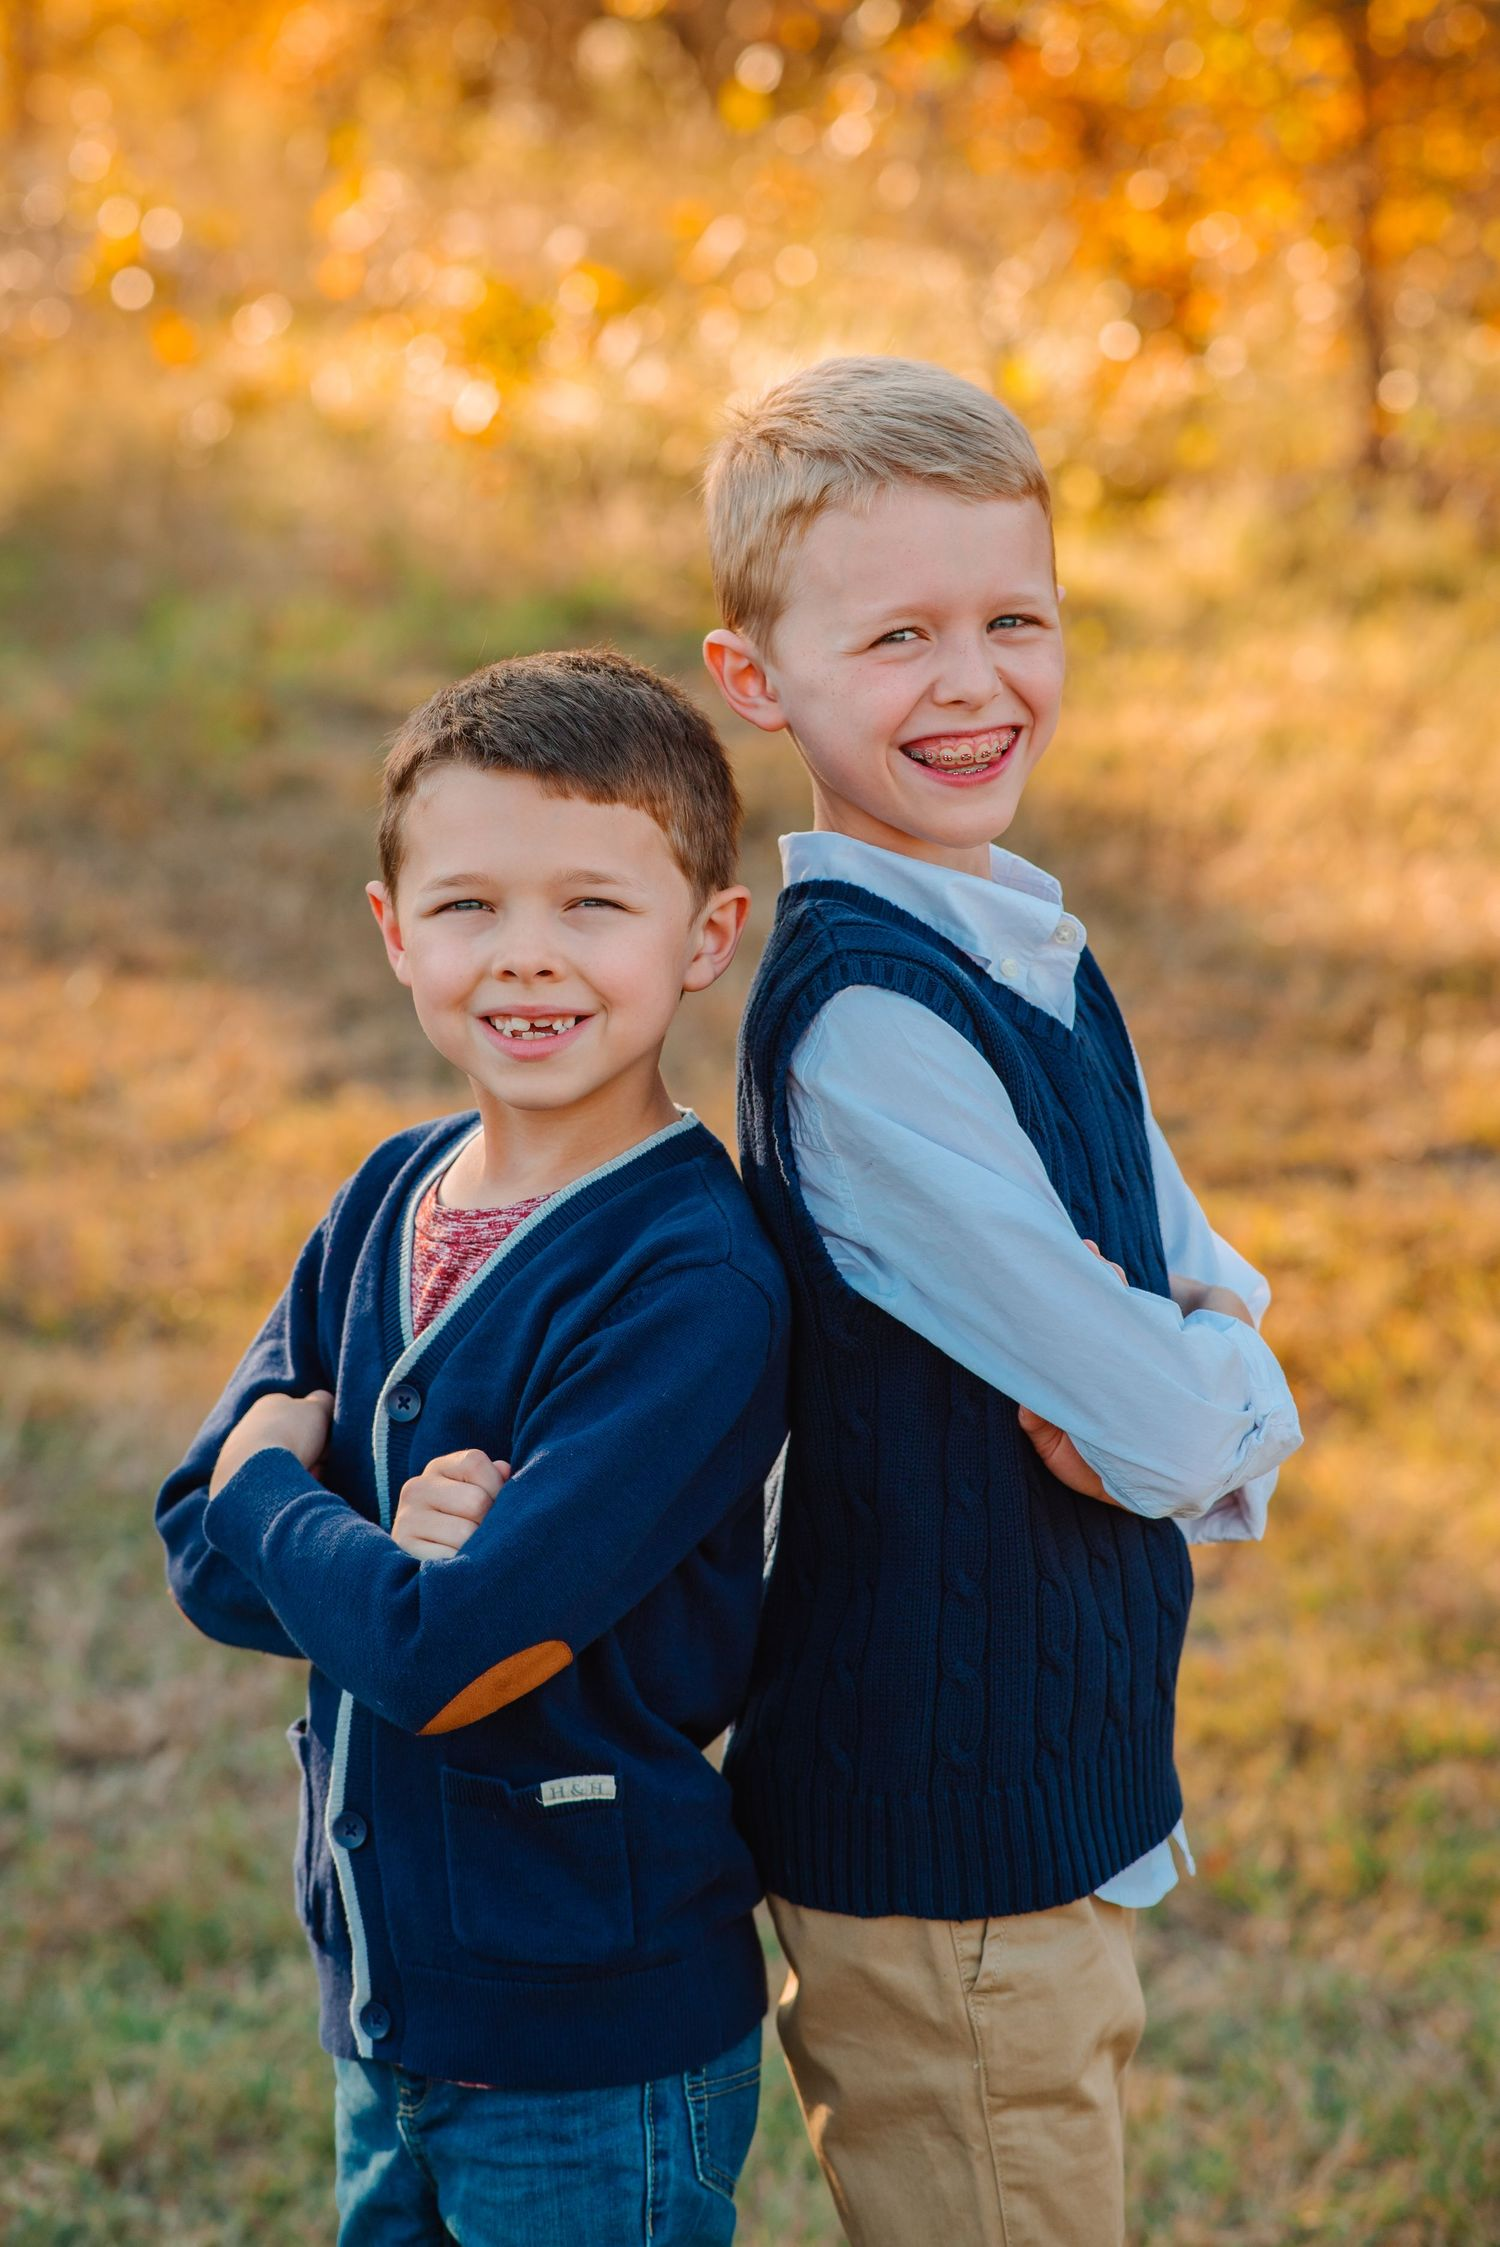 dfw photographer mandy beth photography fall mini session family child children couple love roanoke texas fort worth